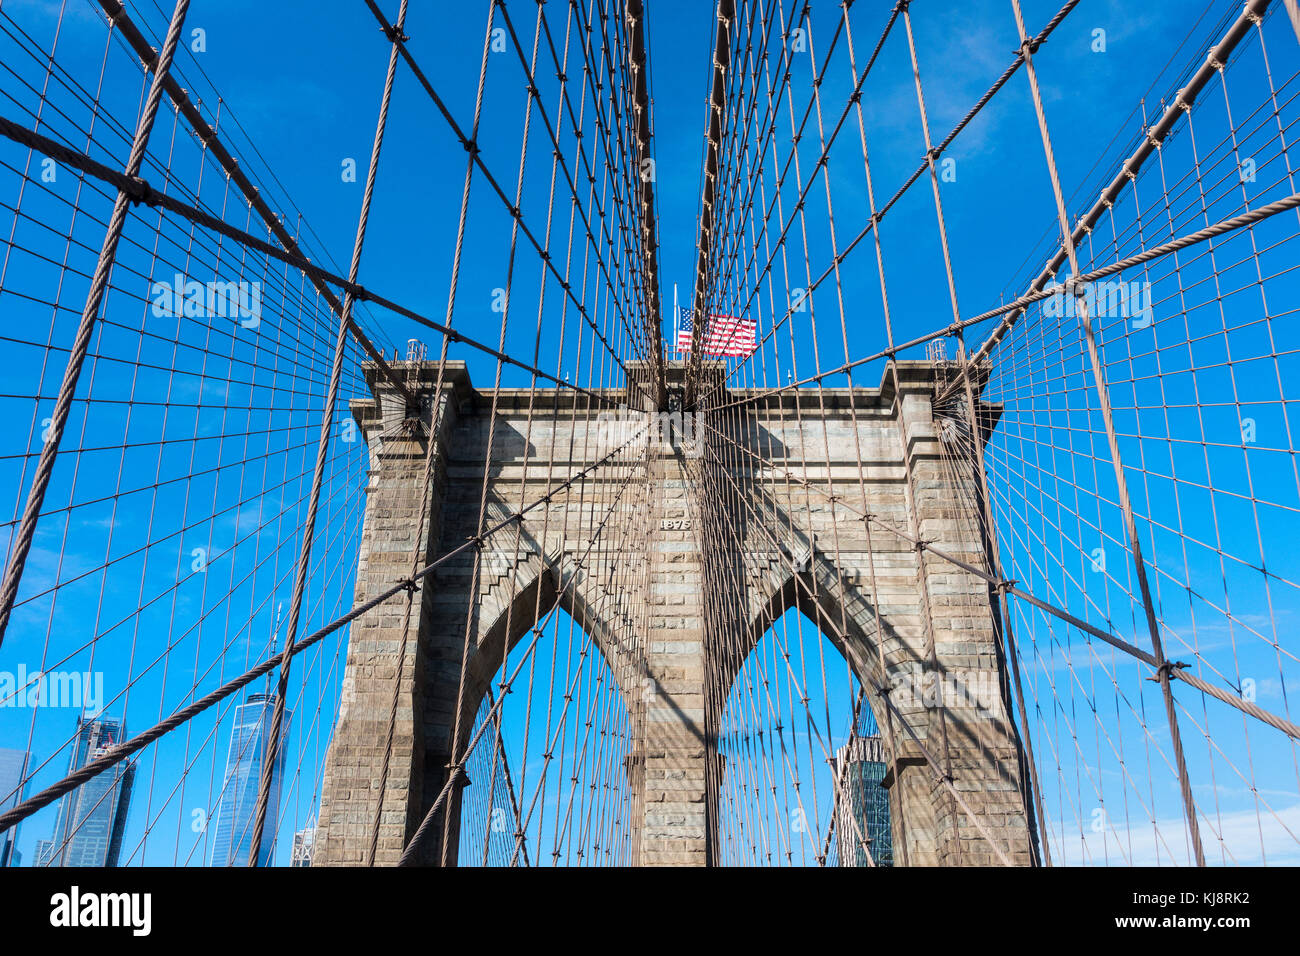 One of the stone towers of the Brooklyn Bridge and an American flag on top Stock Photo